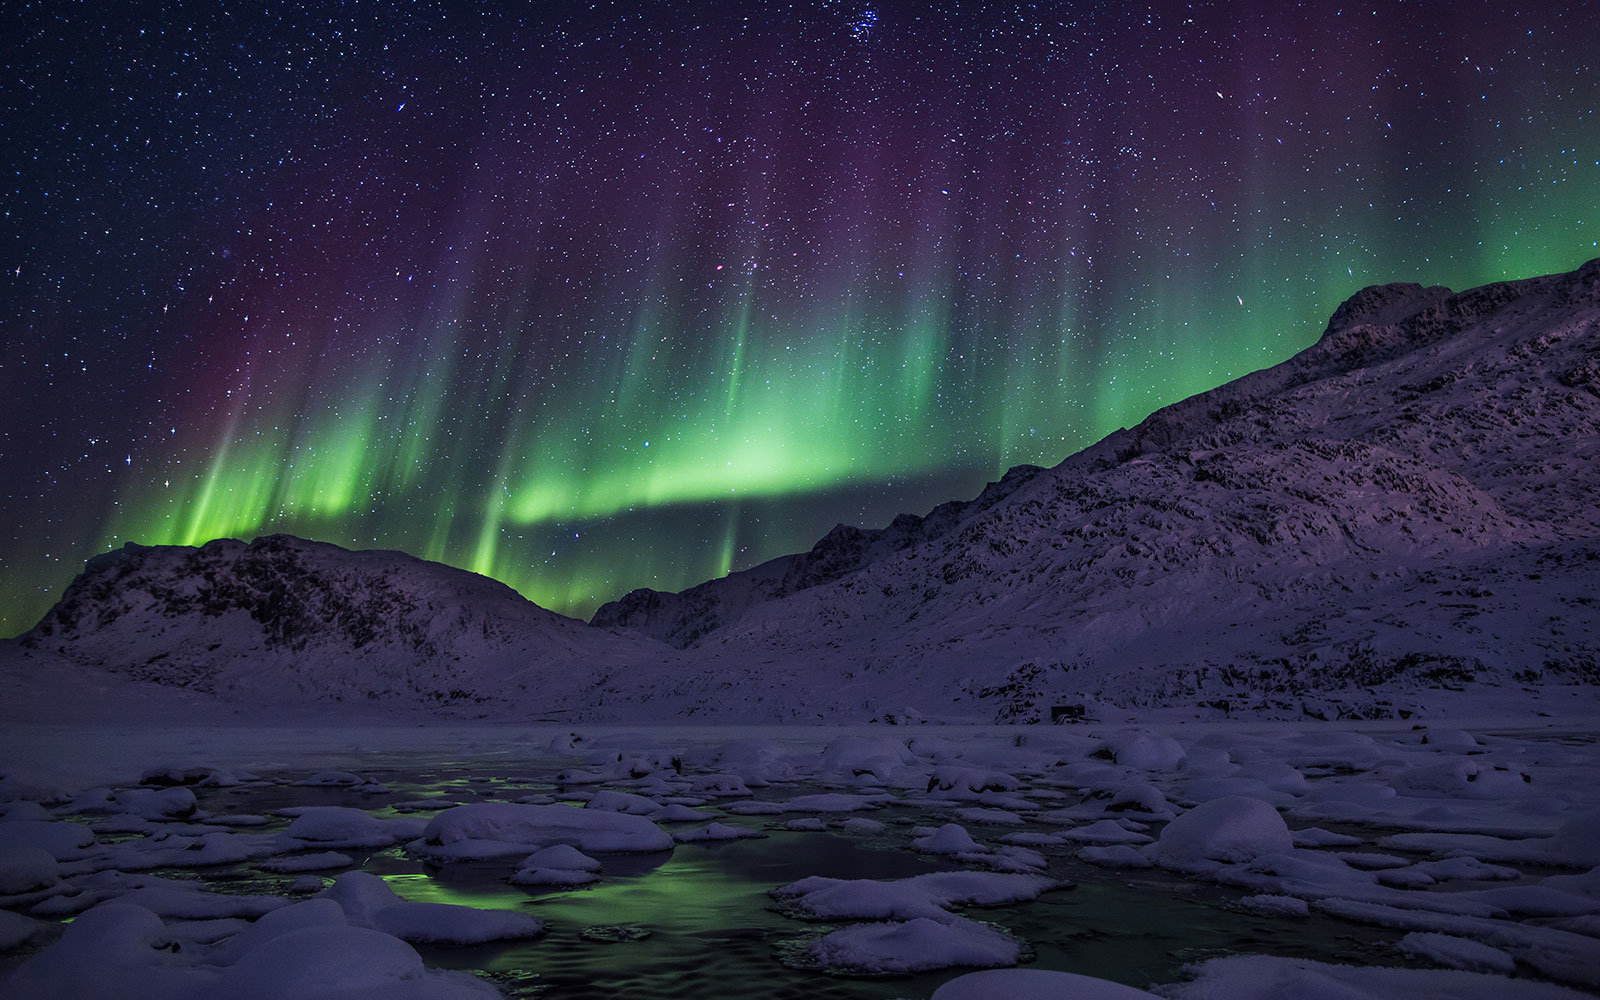 best place to see aurora borealis, Greenland